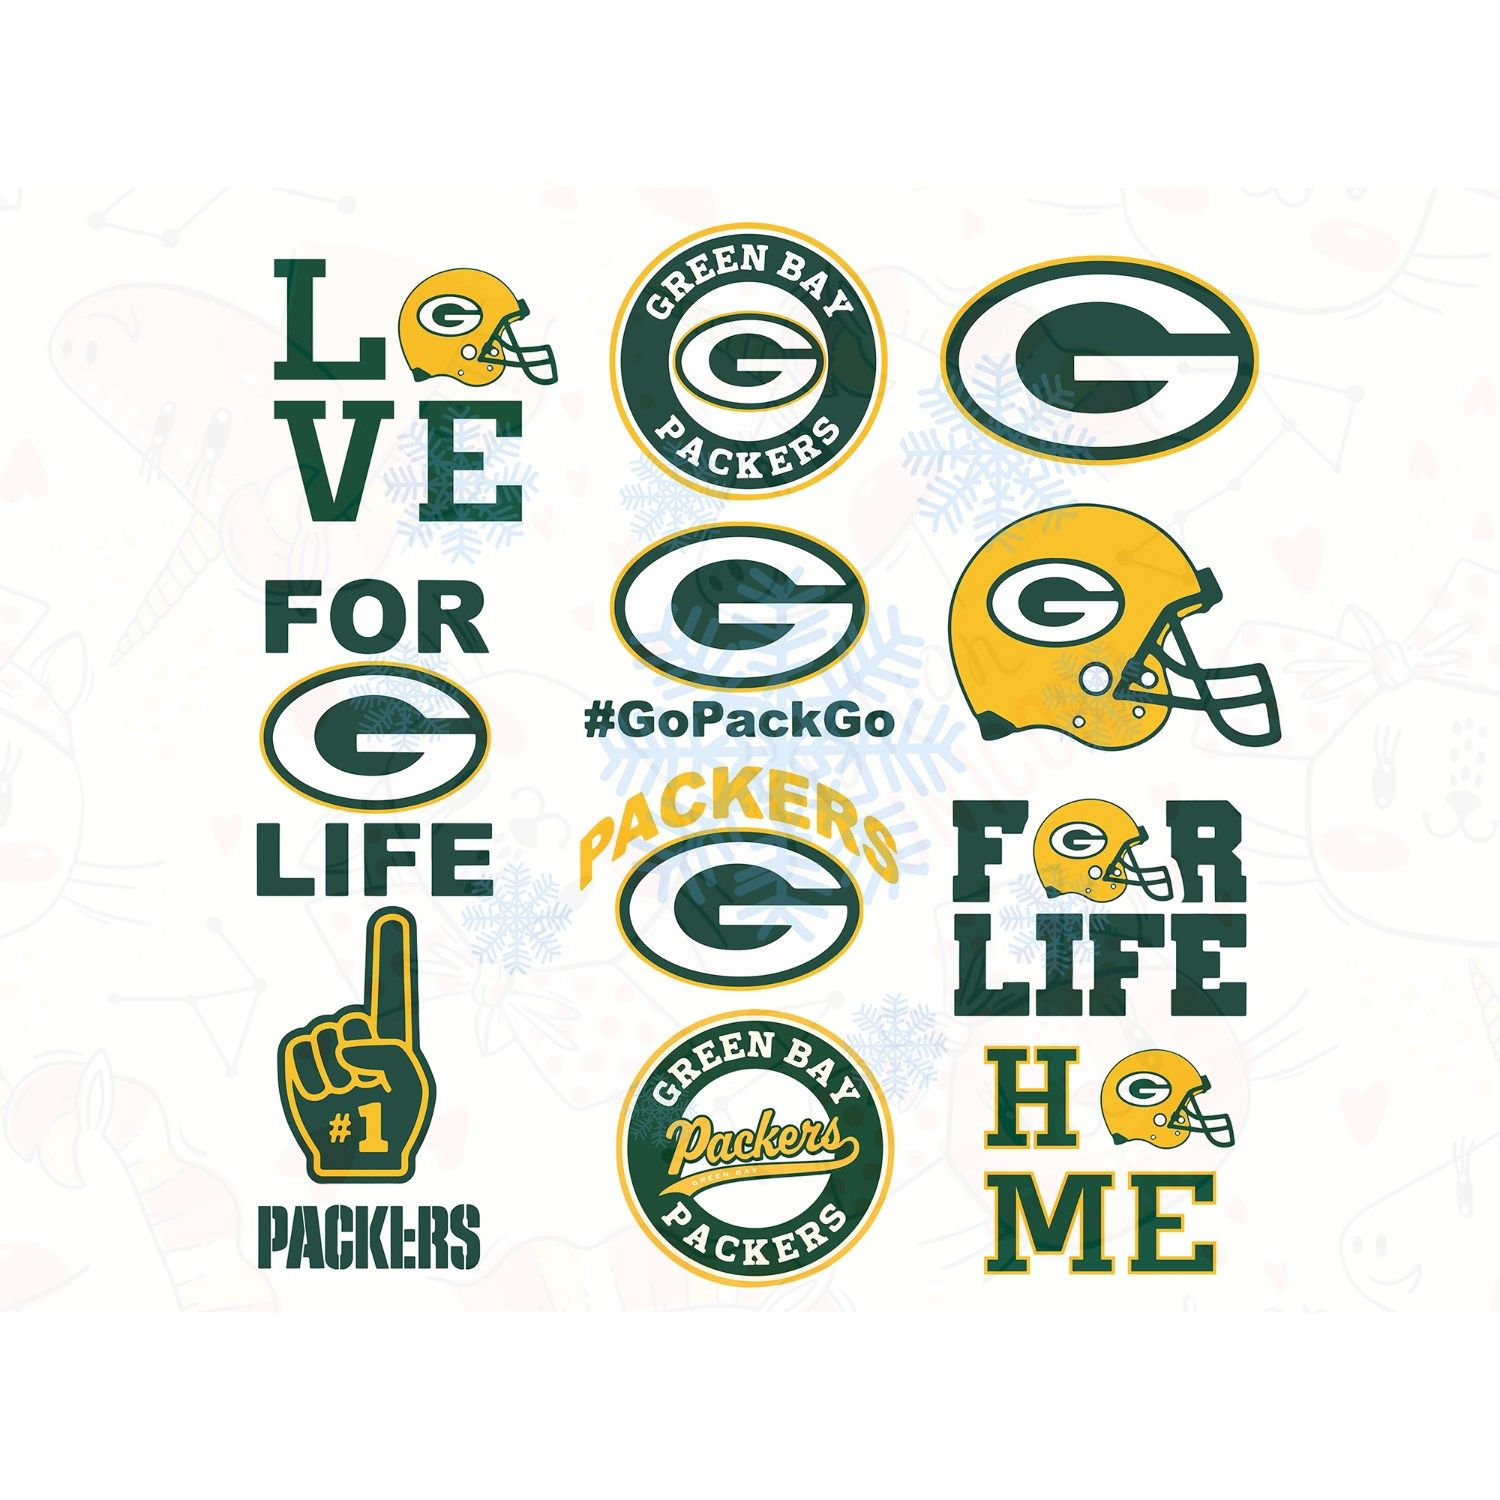 Green Bay Packers 2 Nfl Svg Love Football Love Green Bay Packers Football Svg File Football Logo In 2020 Football Logo Green Bay Green Bay Packers Logo